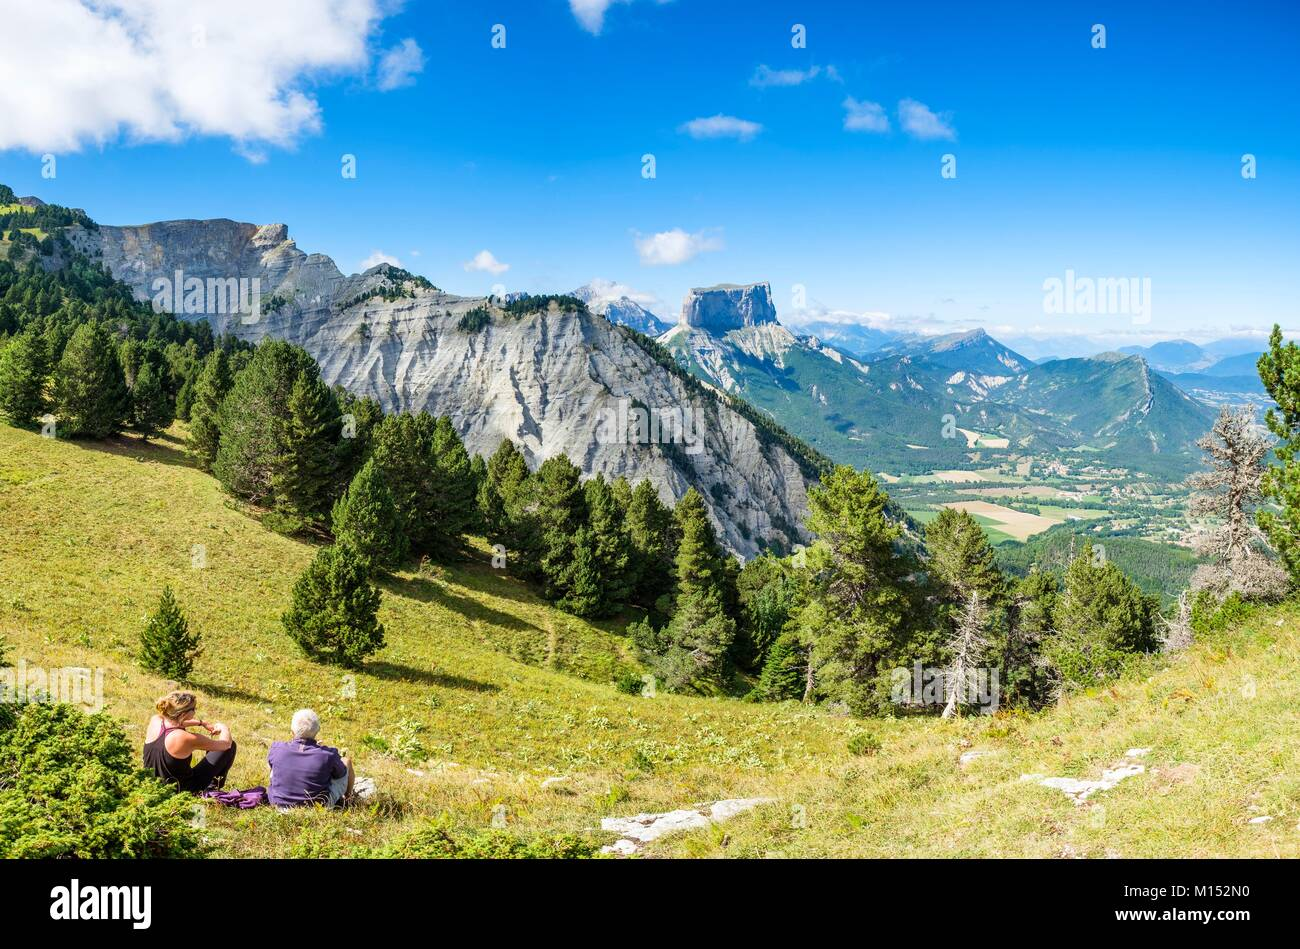 France, Isere, Vercors Regional Natural Park, hiking in the National Nature Reserve of the Vercors Highlands, view Stock Photo